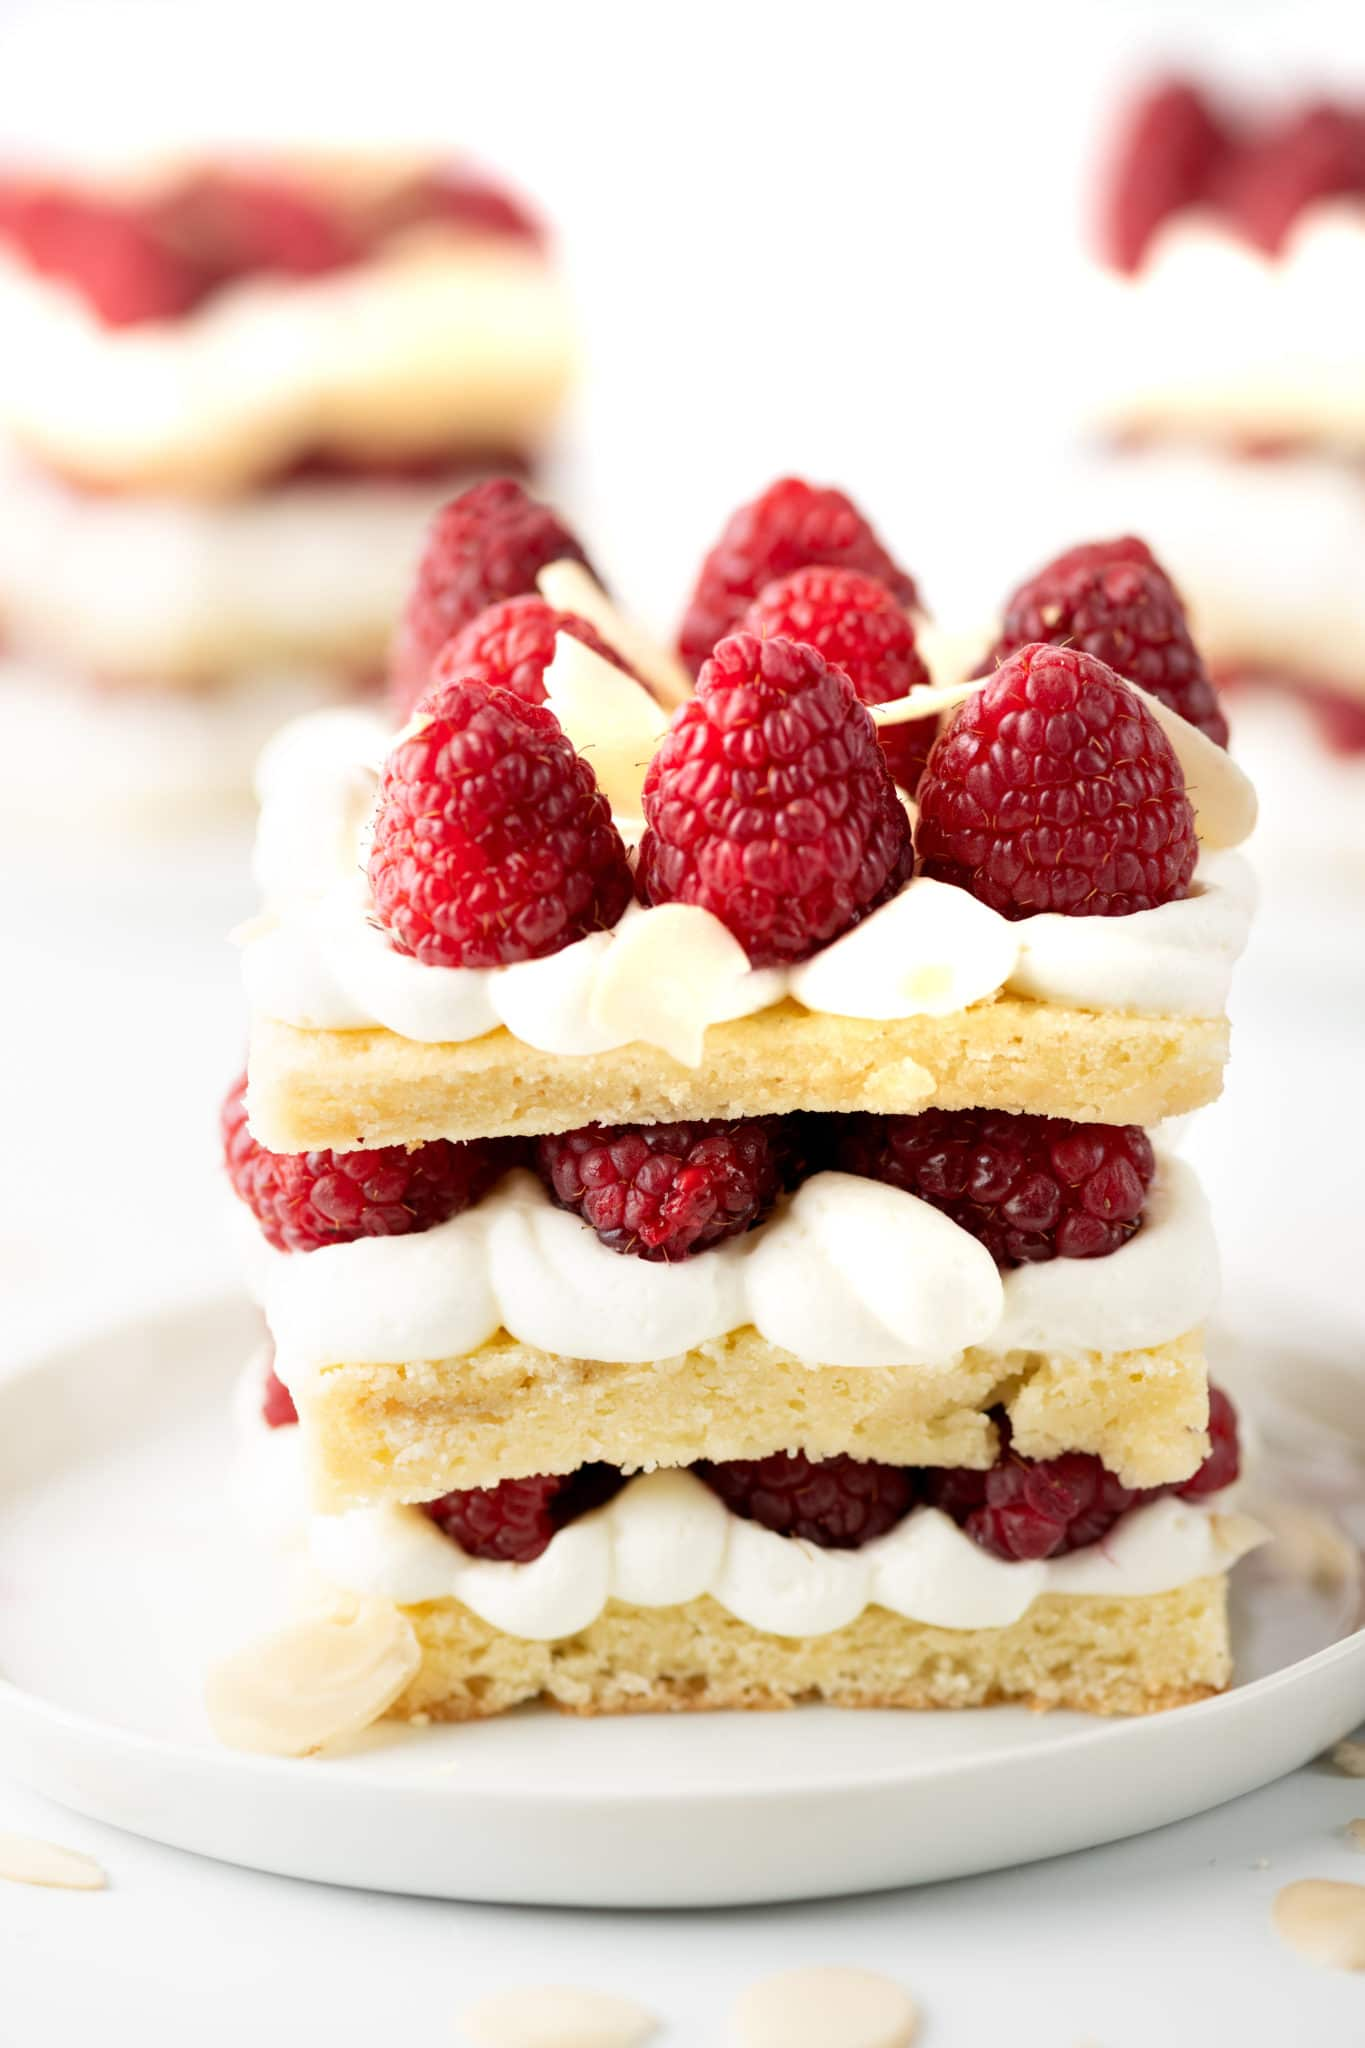 Up close shot of a raspberry shortcake with oozing layers of fresh almond cream and bright fresh red berries all on a bright white background.